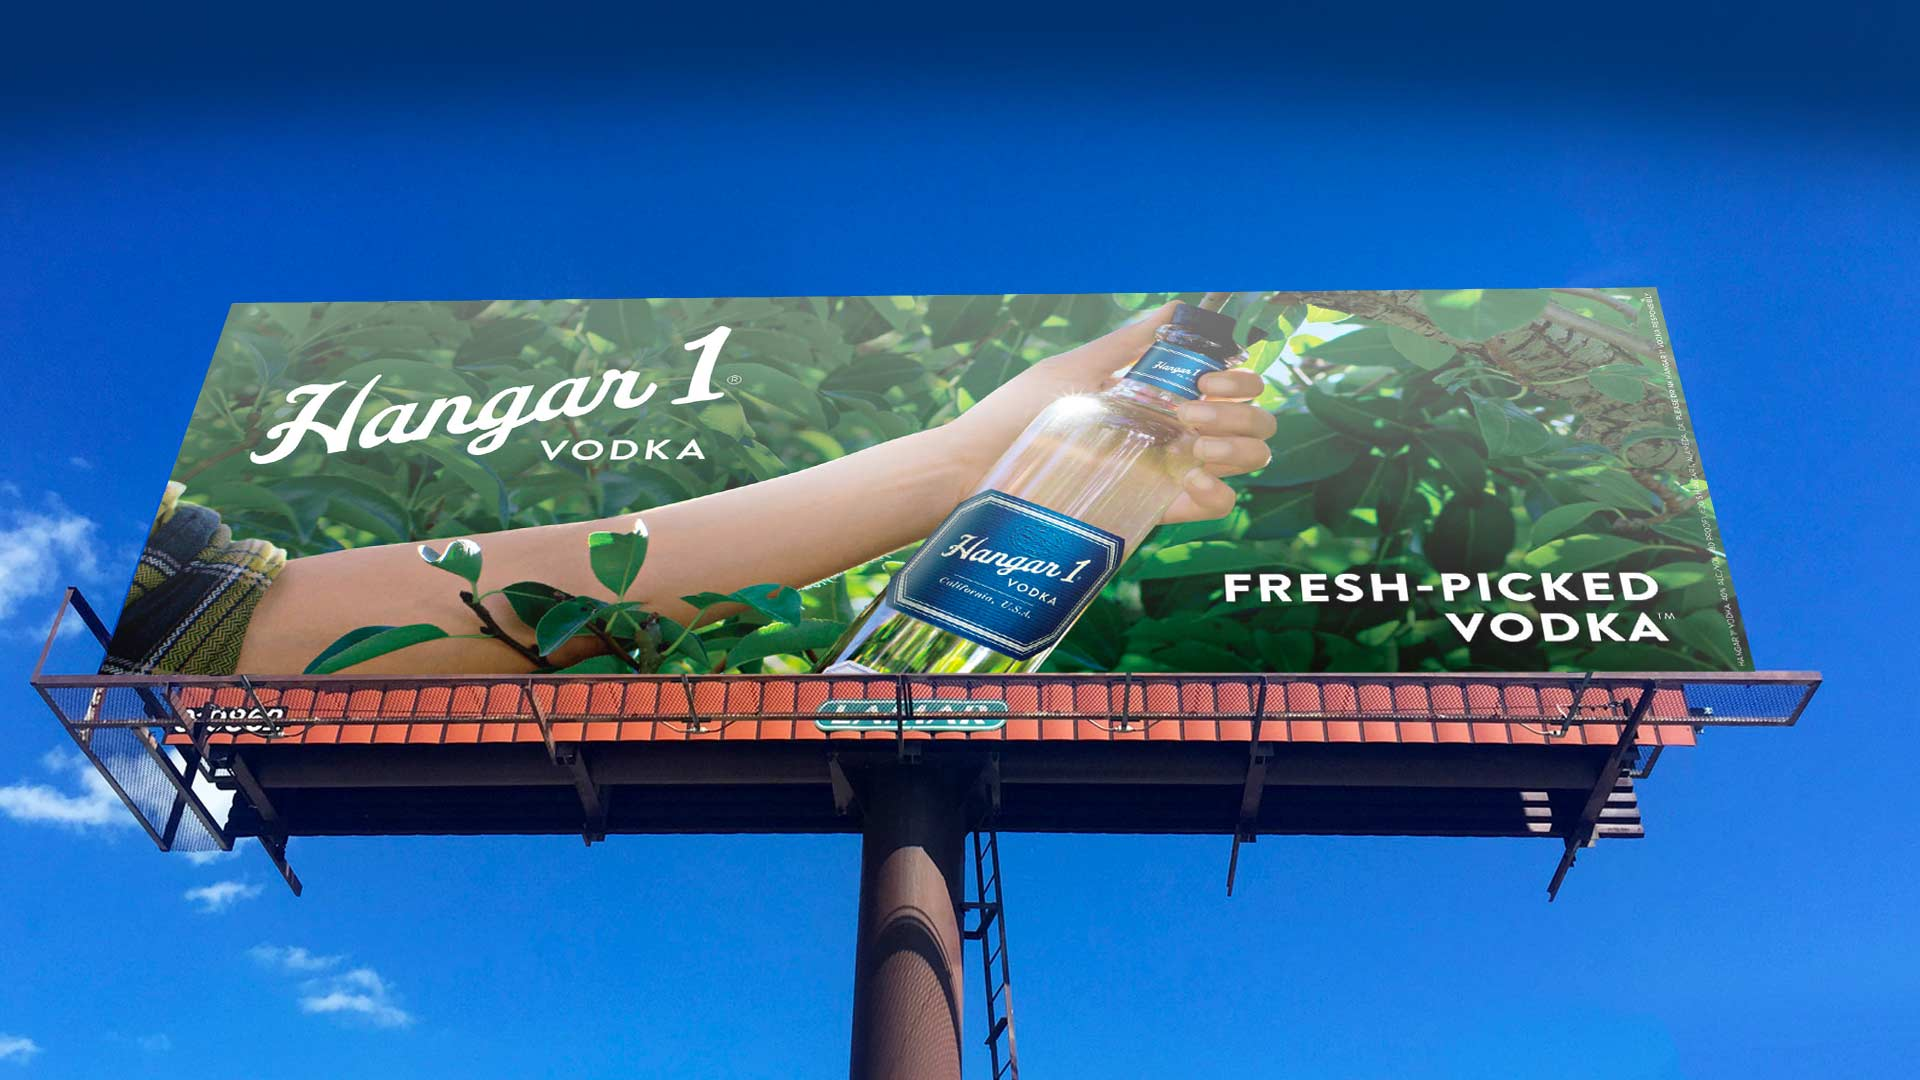 Hangar 1 - Tree Billboard